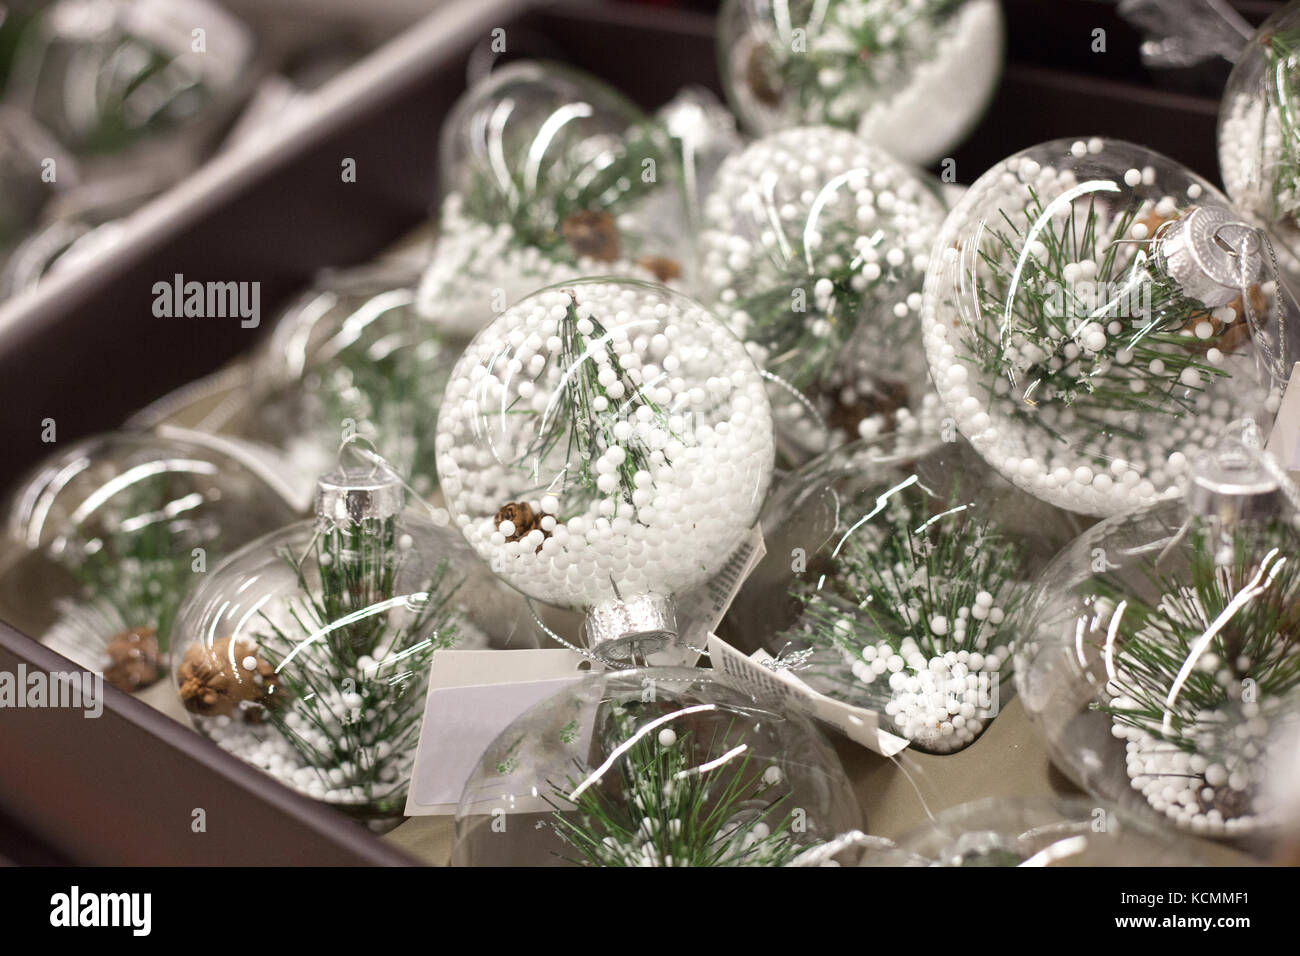 Christmas Tree Decorations Made Of Glass With Fir And Artificial